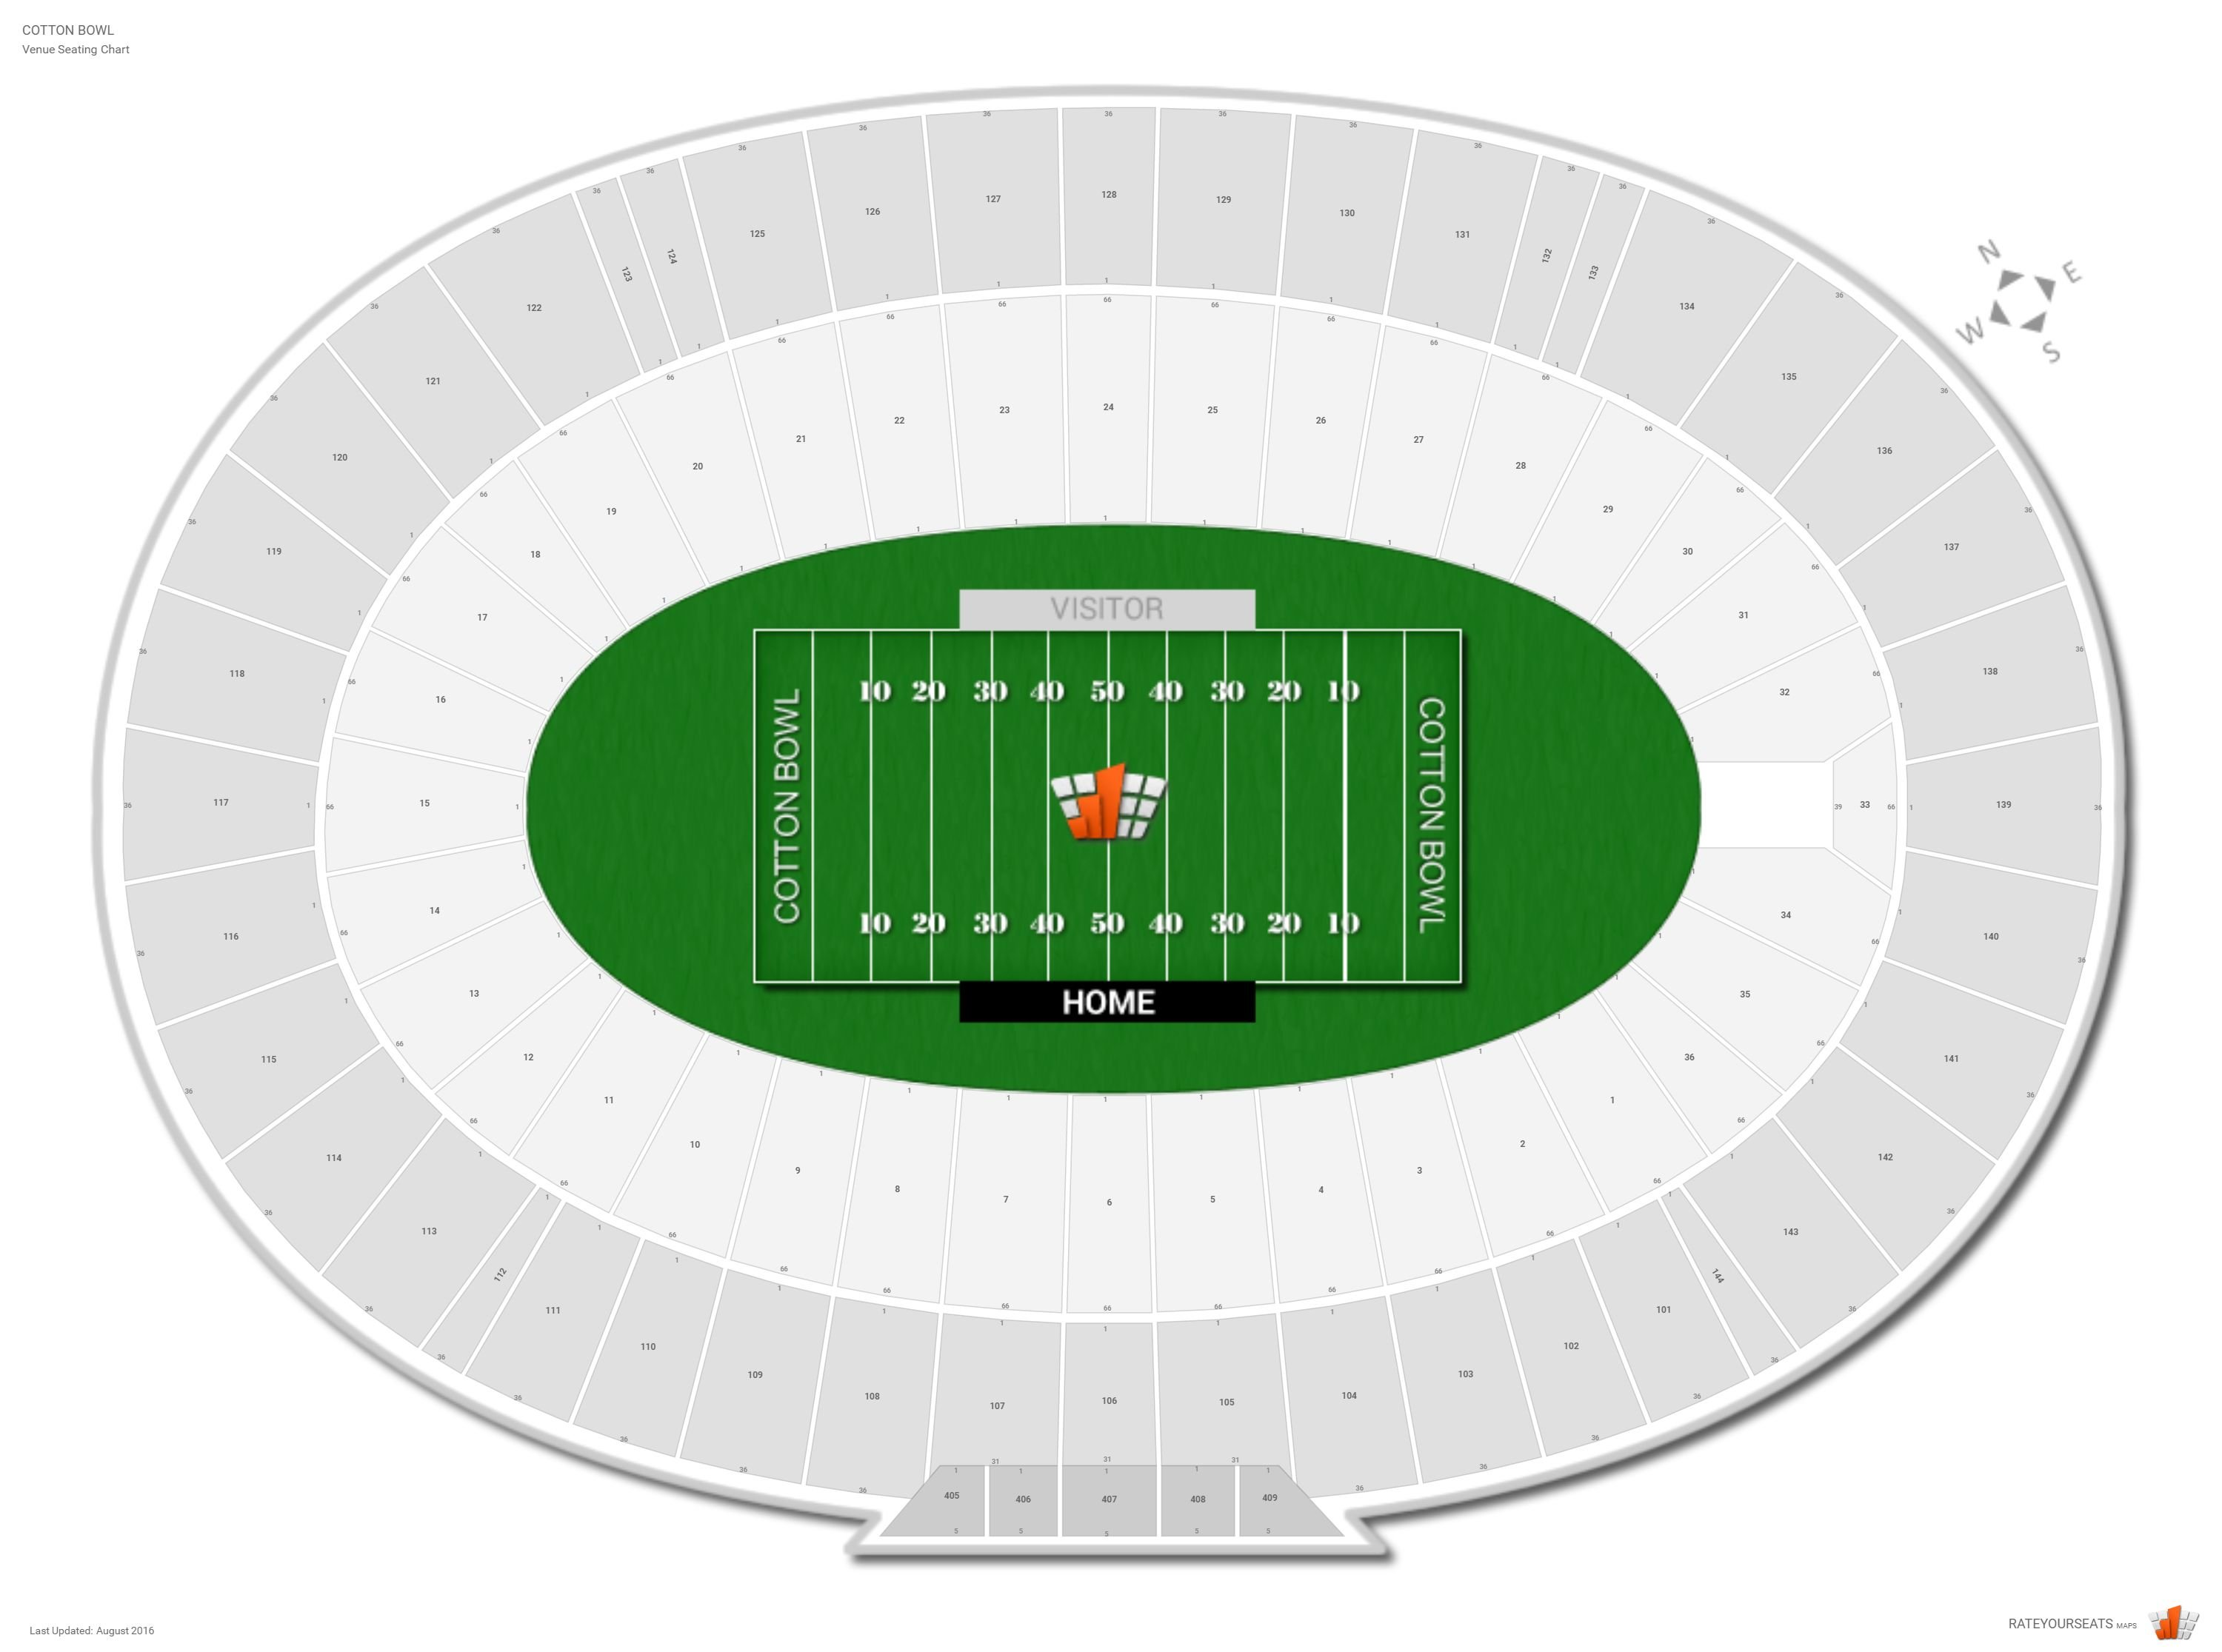 Cotton Bowl Seating Chart With Row Numbers